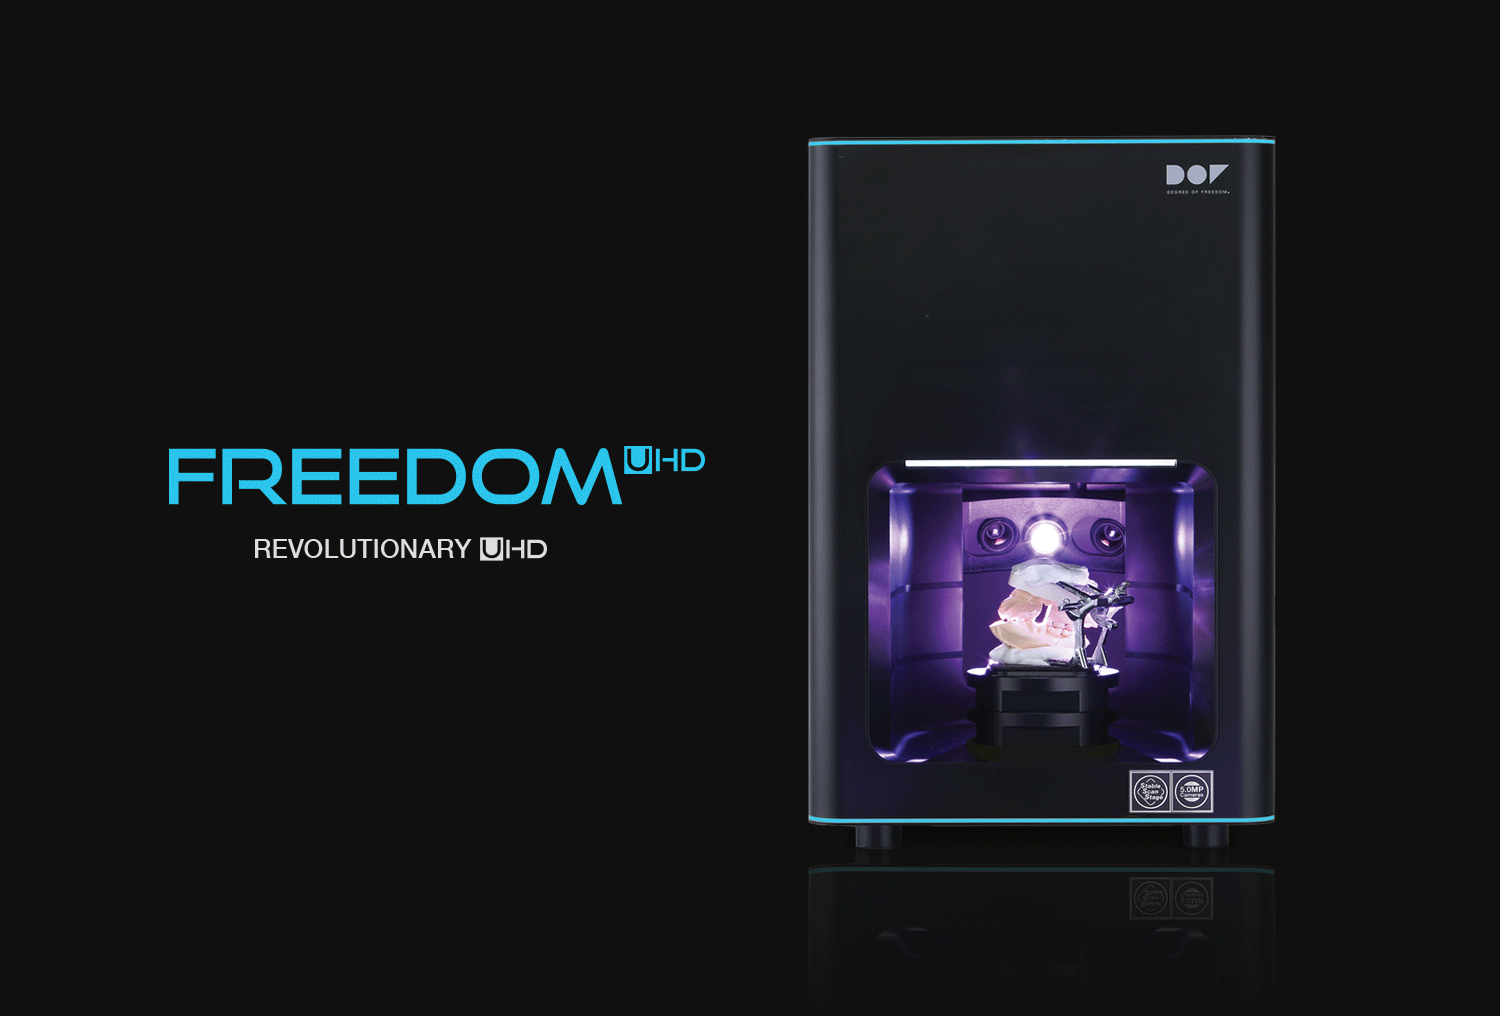 FREEDOM UHD - REVOLUTIONARY UHD